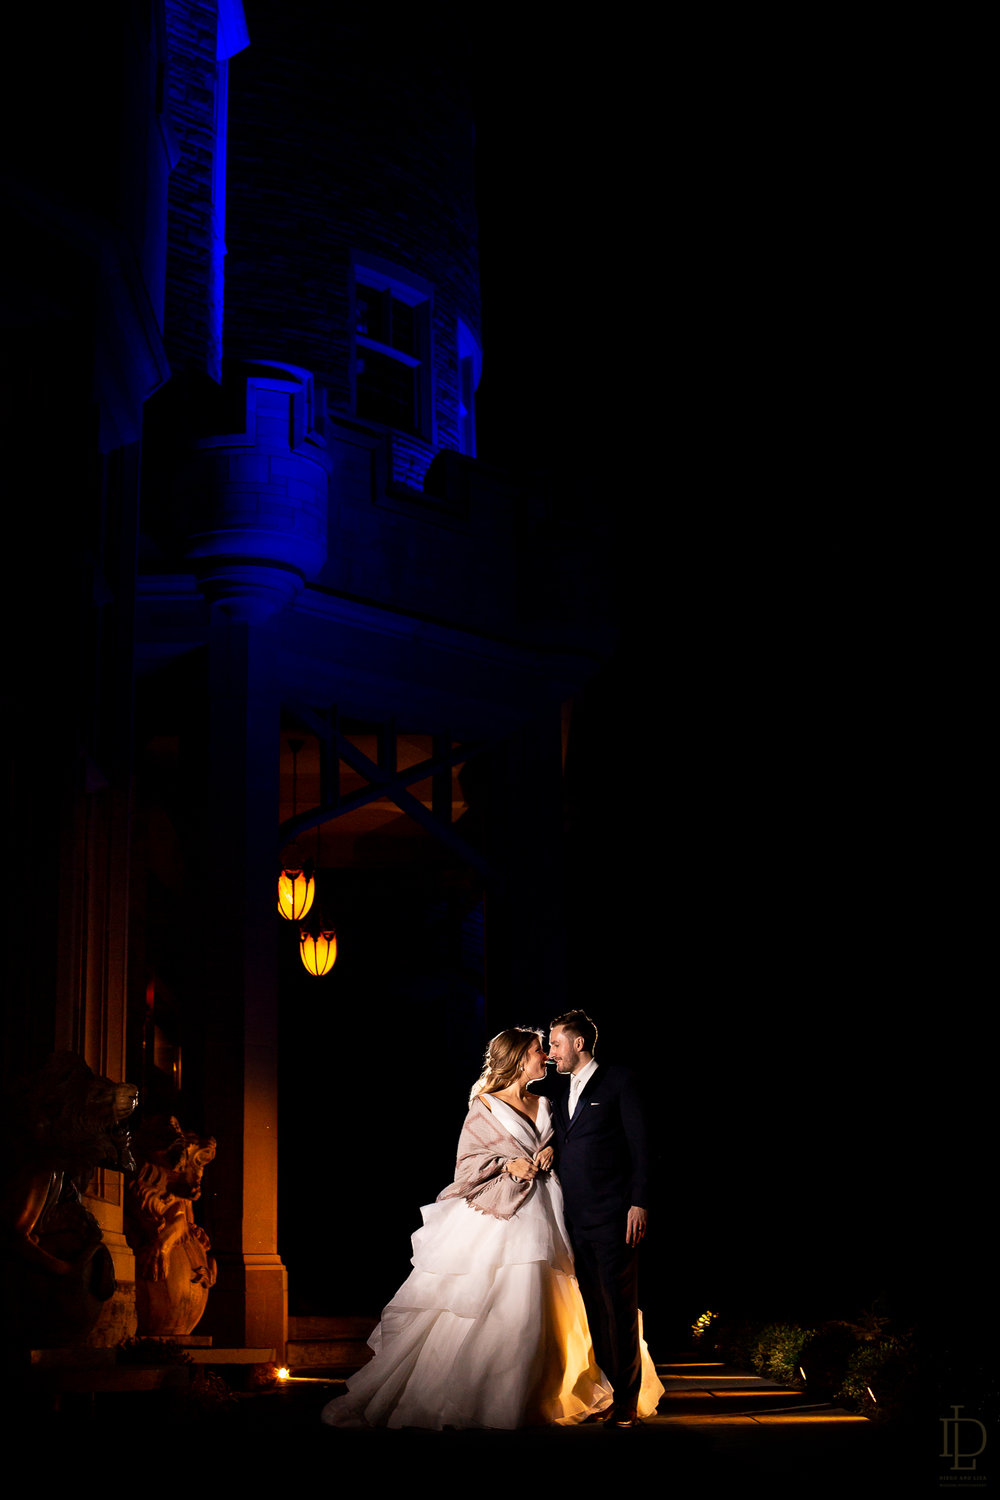 Casa-loma-wedding-39.jpg